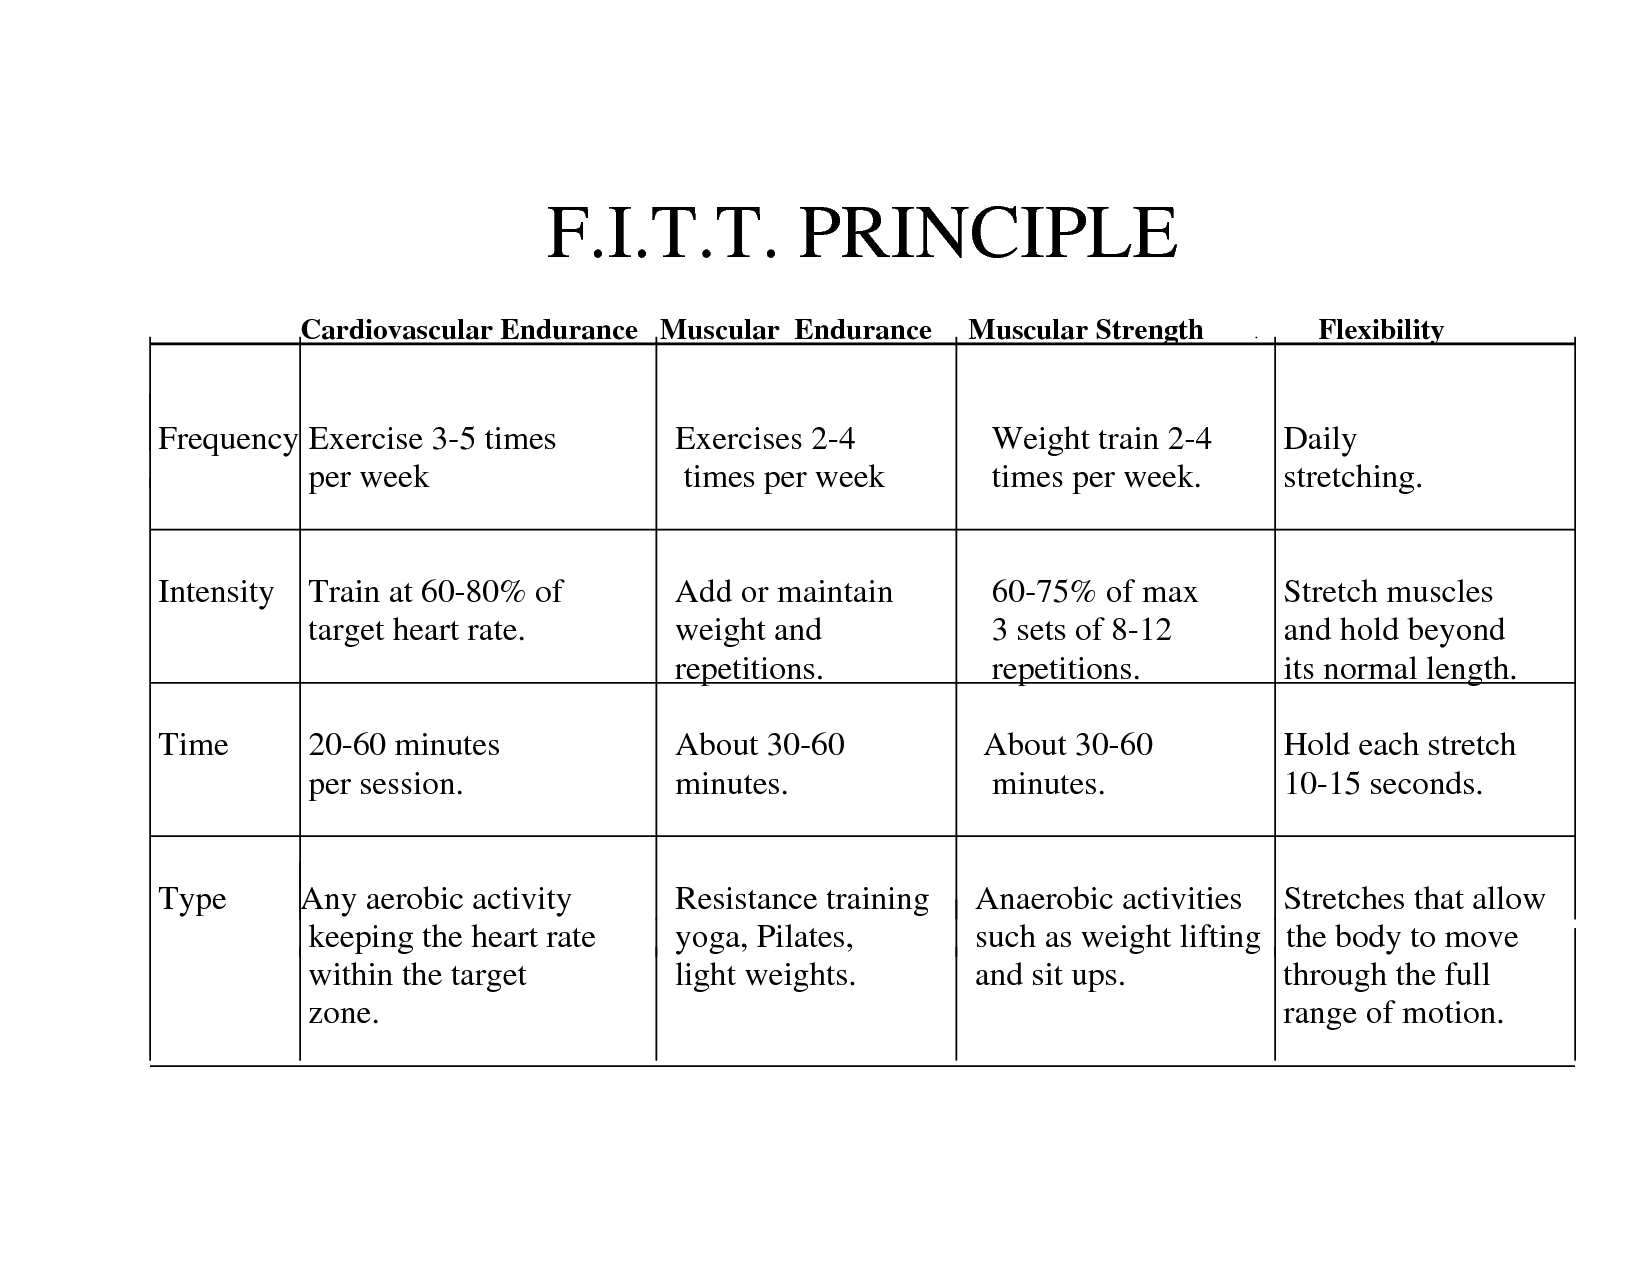 F I T T Principle For Cardiovascular Fitness